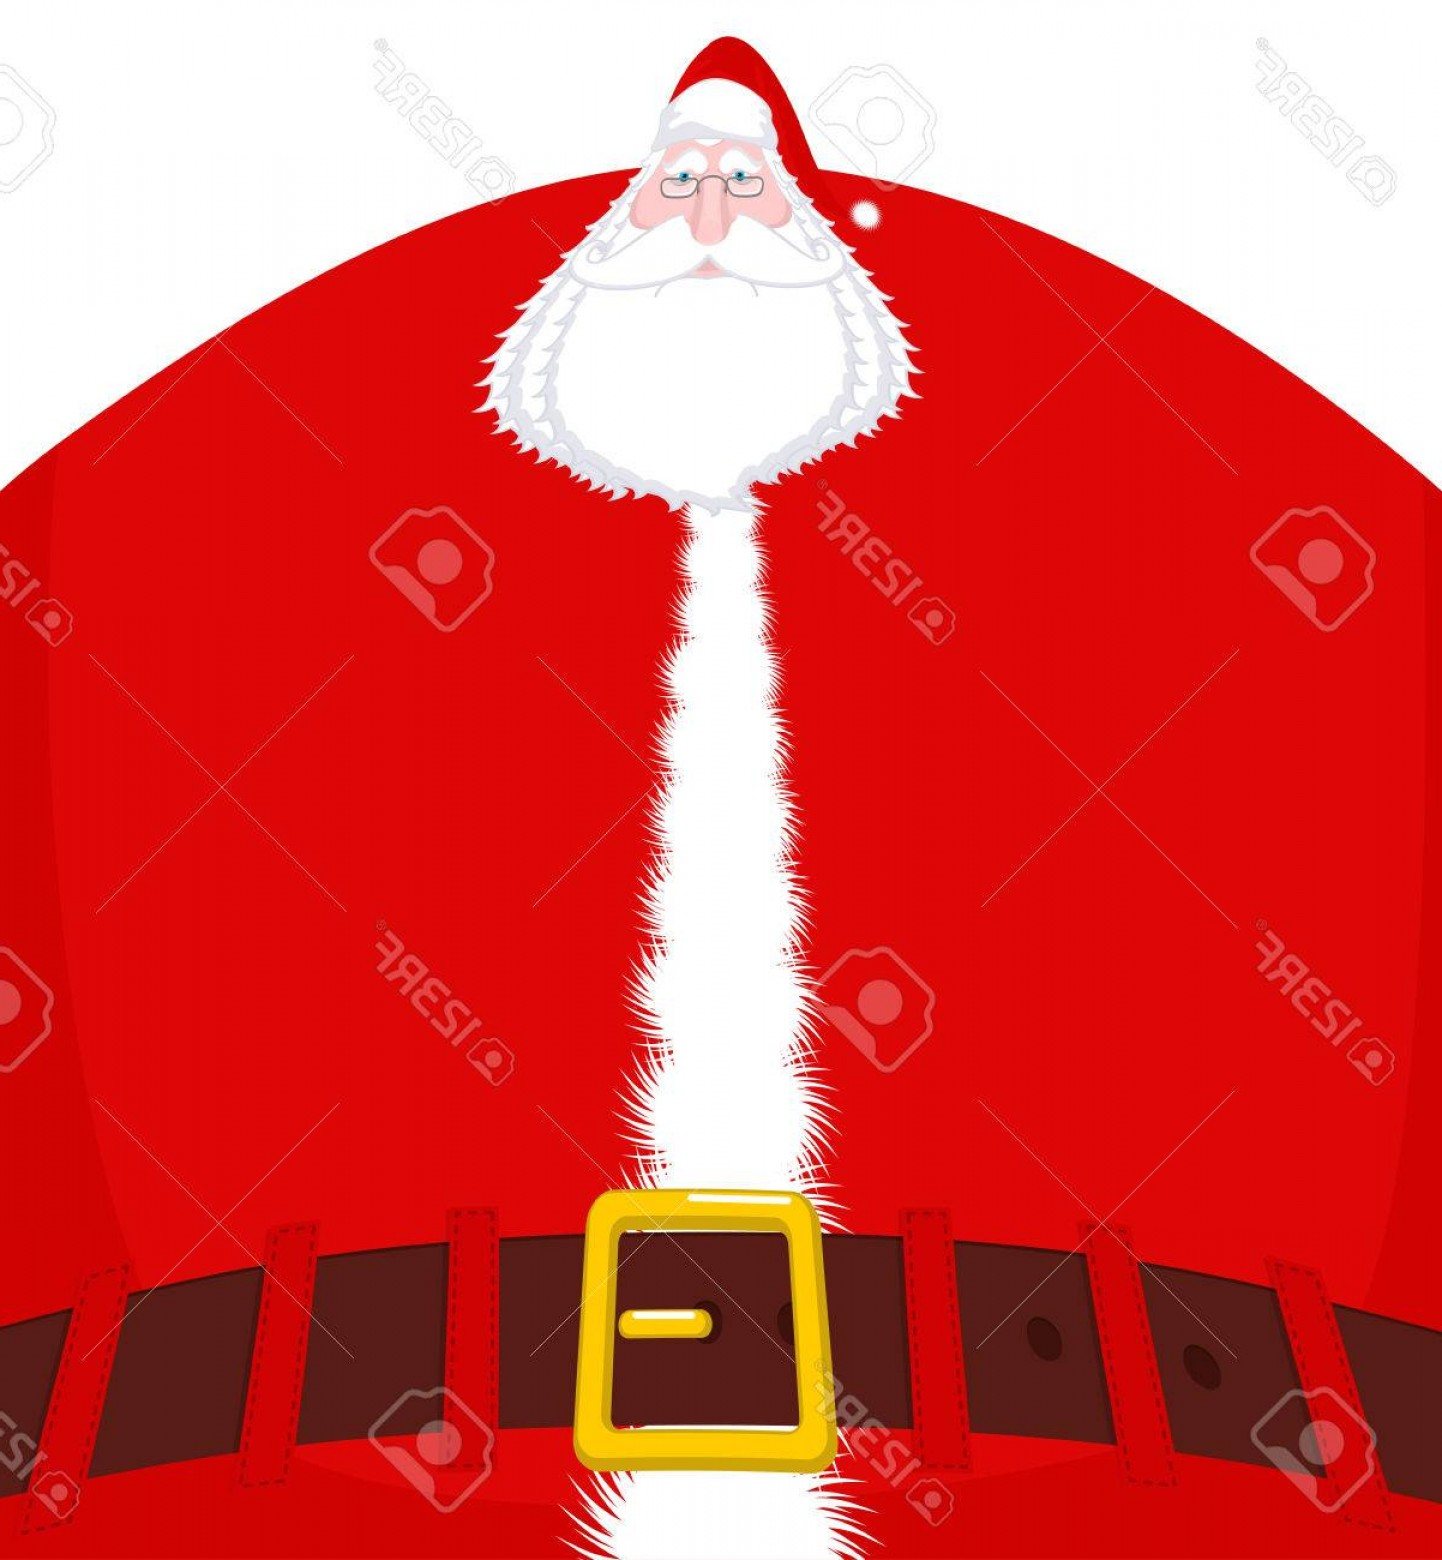 Vector Santa Belt: Photostock Vector Santa Claus Large And Belt Huge Christmas Grandfather Enormous Santa With Beard In Red Suit Illustra